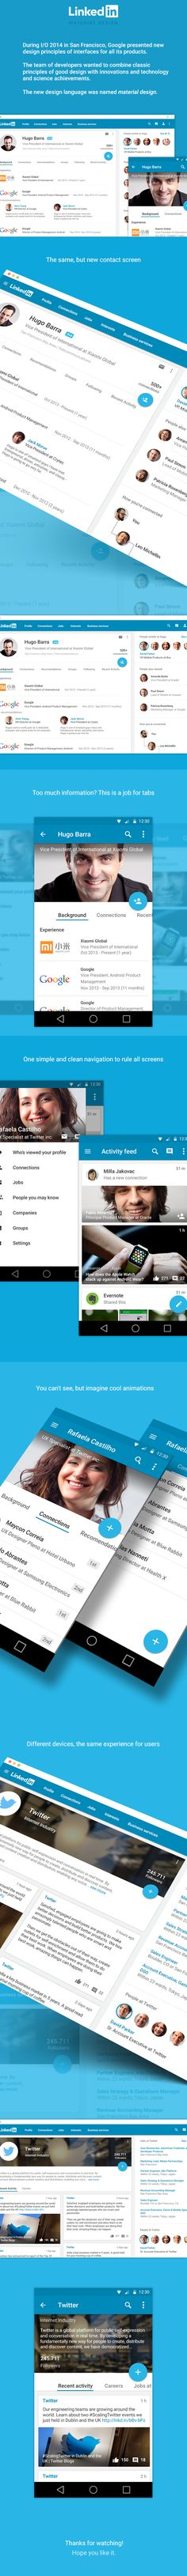 Linkedin Material Design on Web Design Served